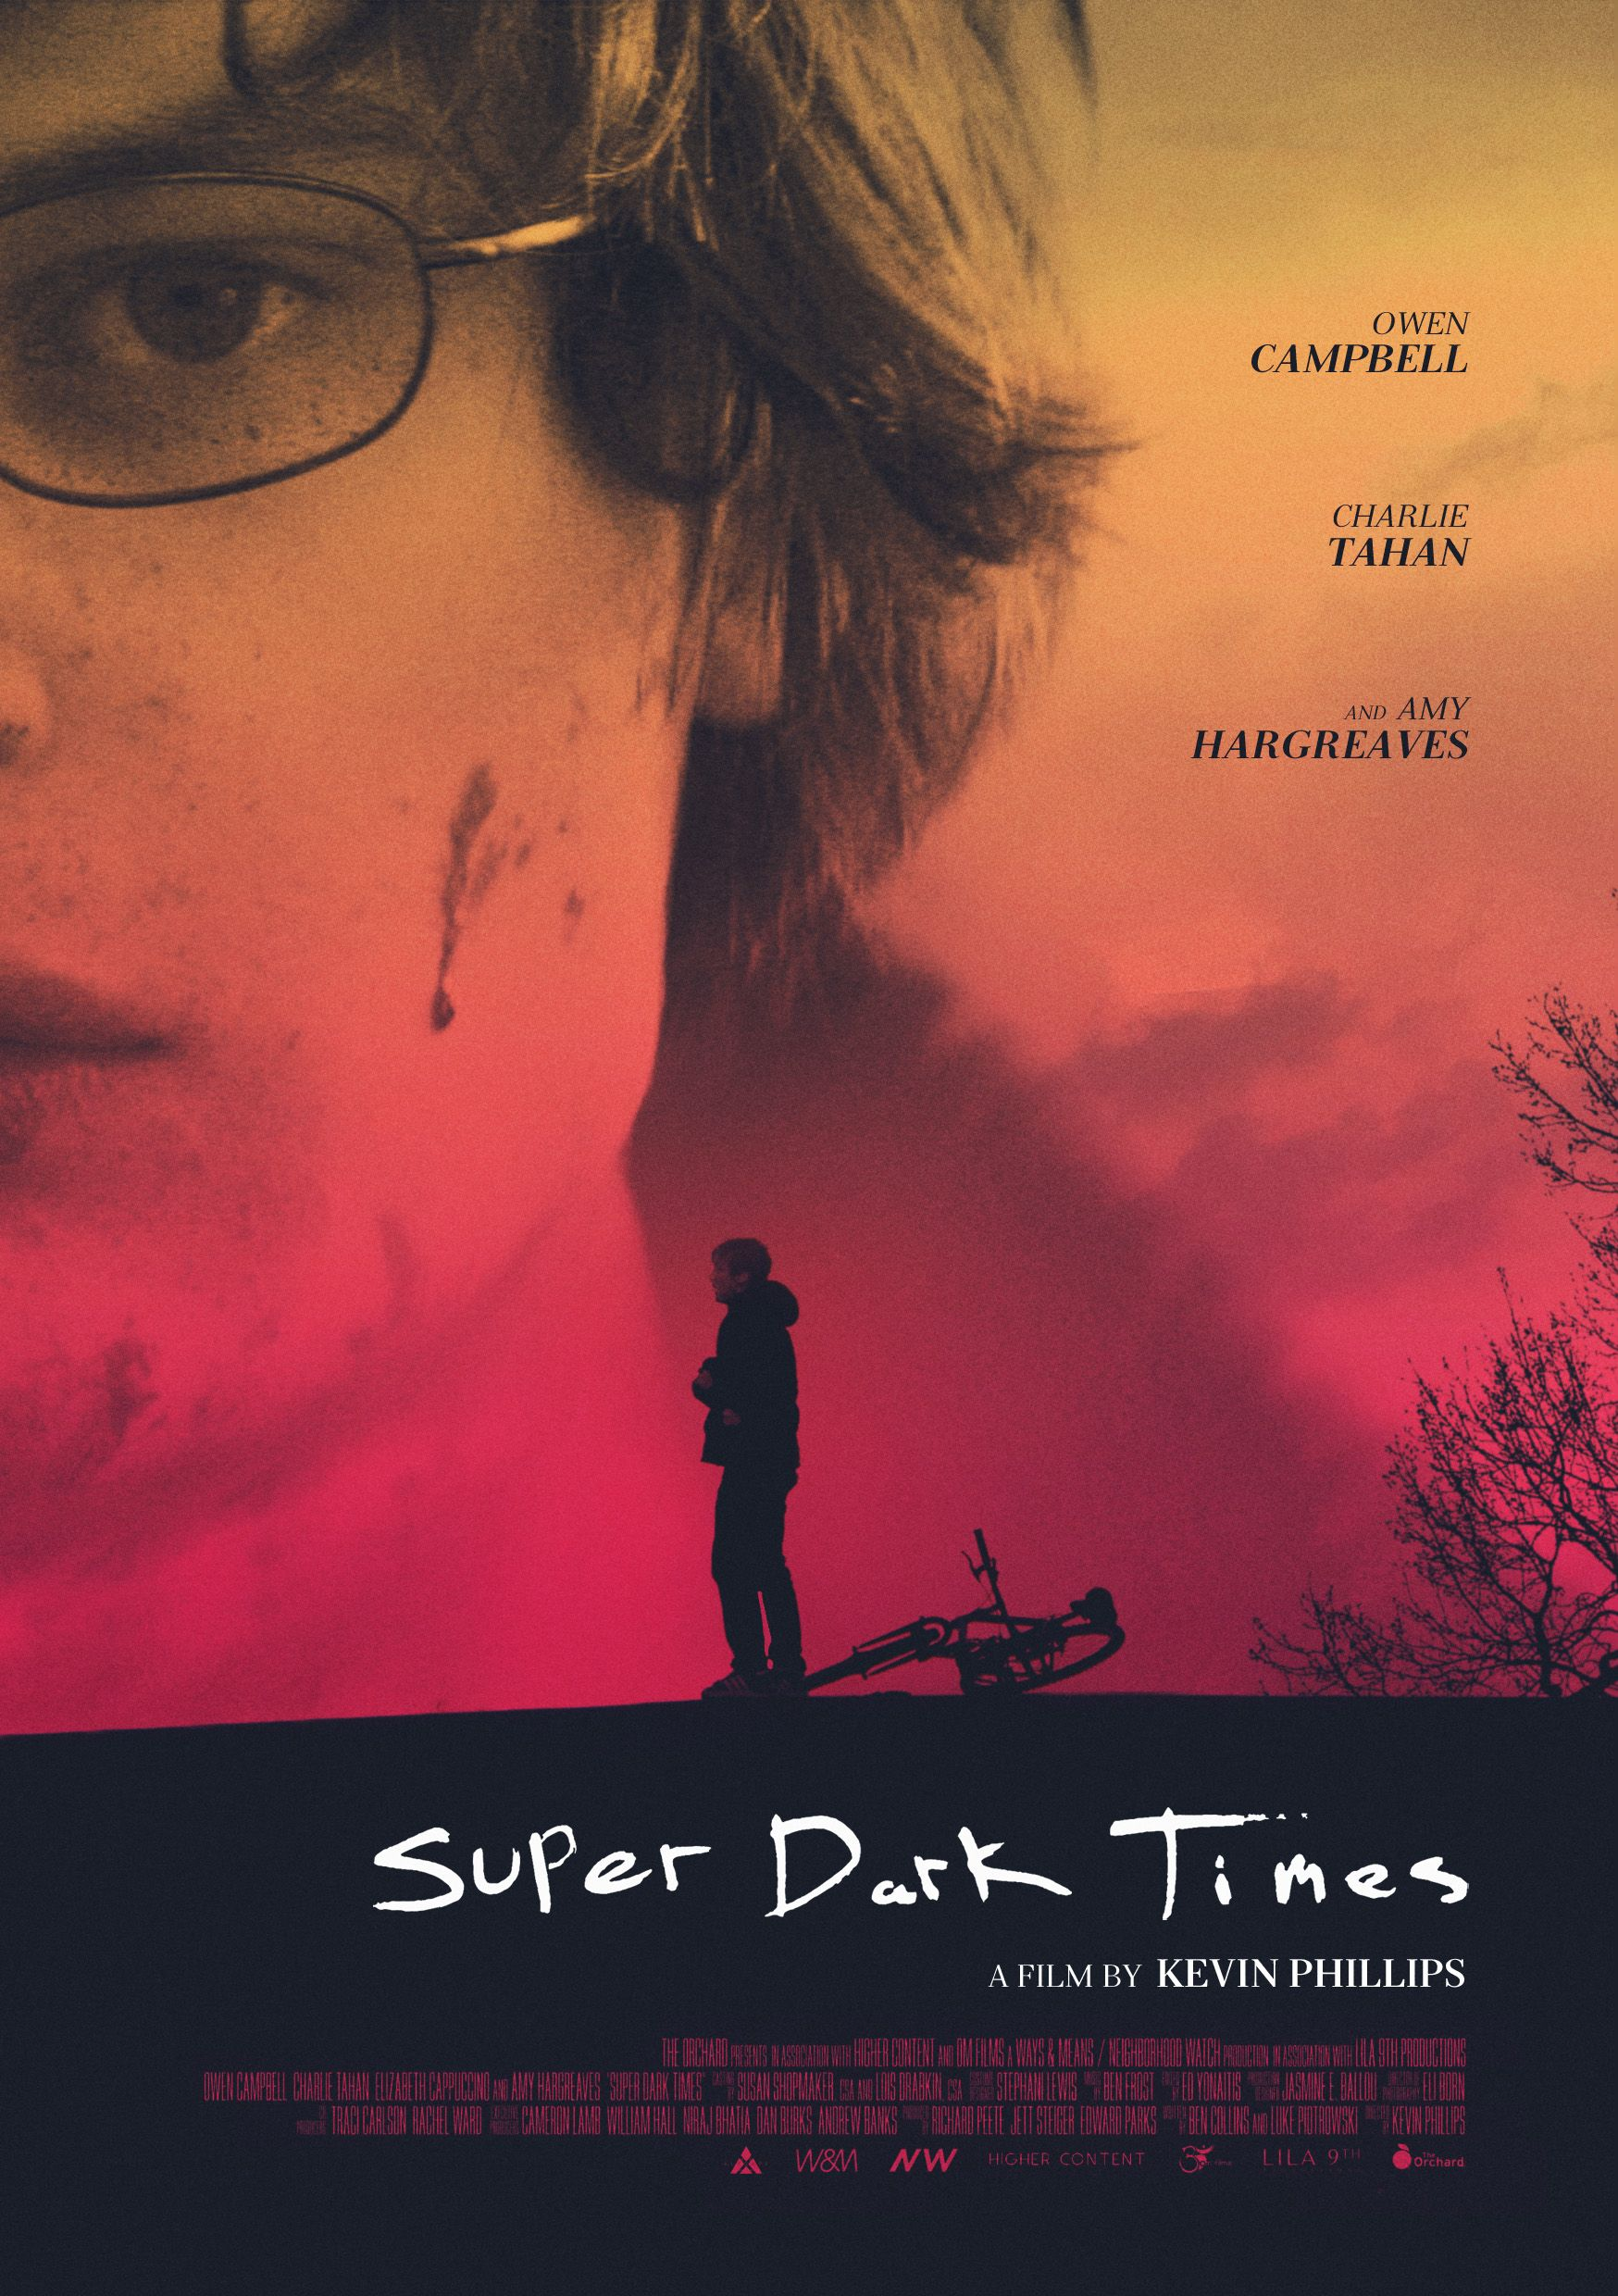 Super Dark Times - Poster by Alecxps | Movies in 2019 | Imdb movies